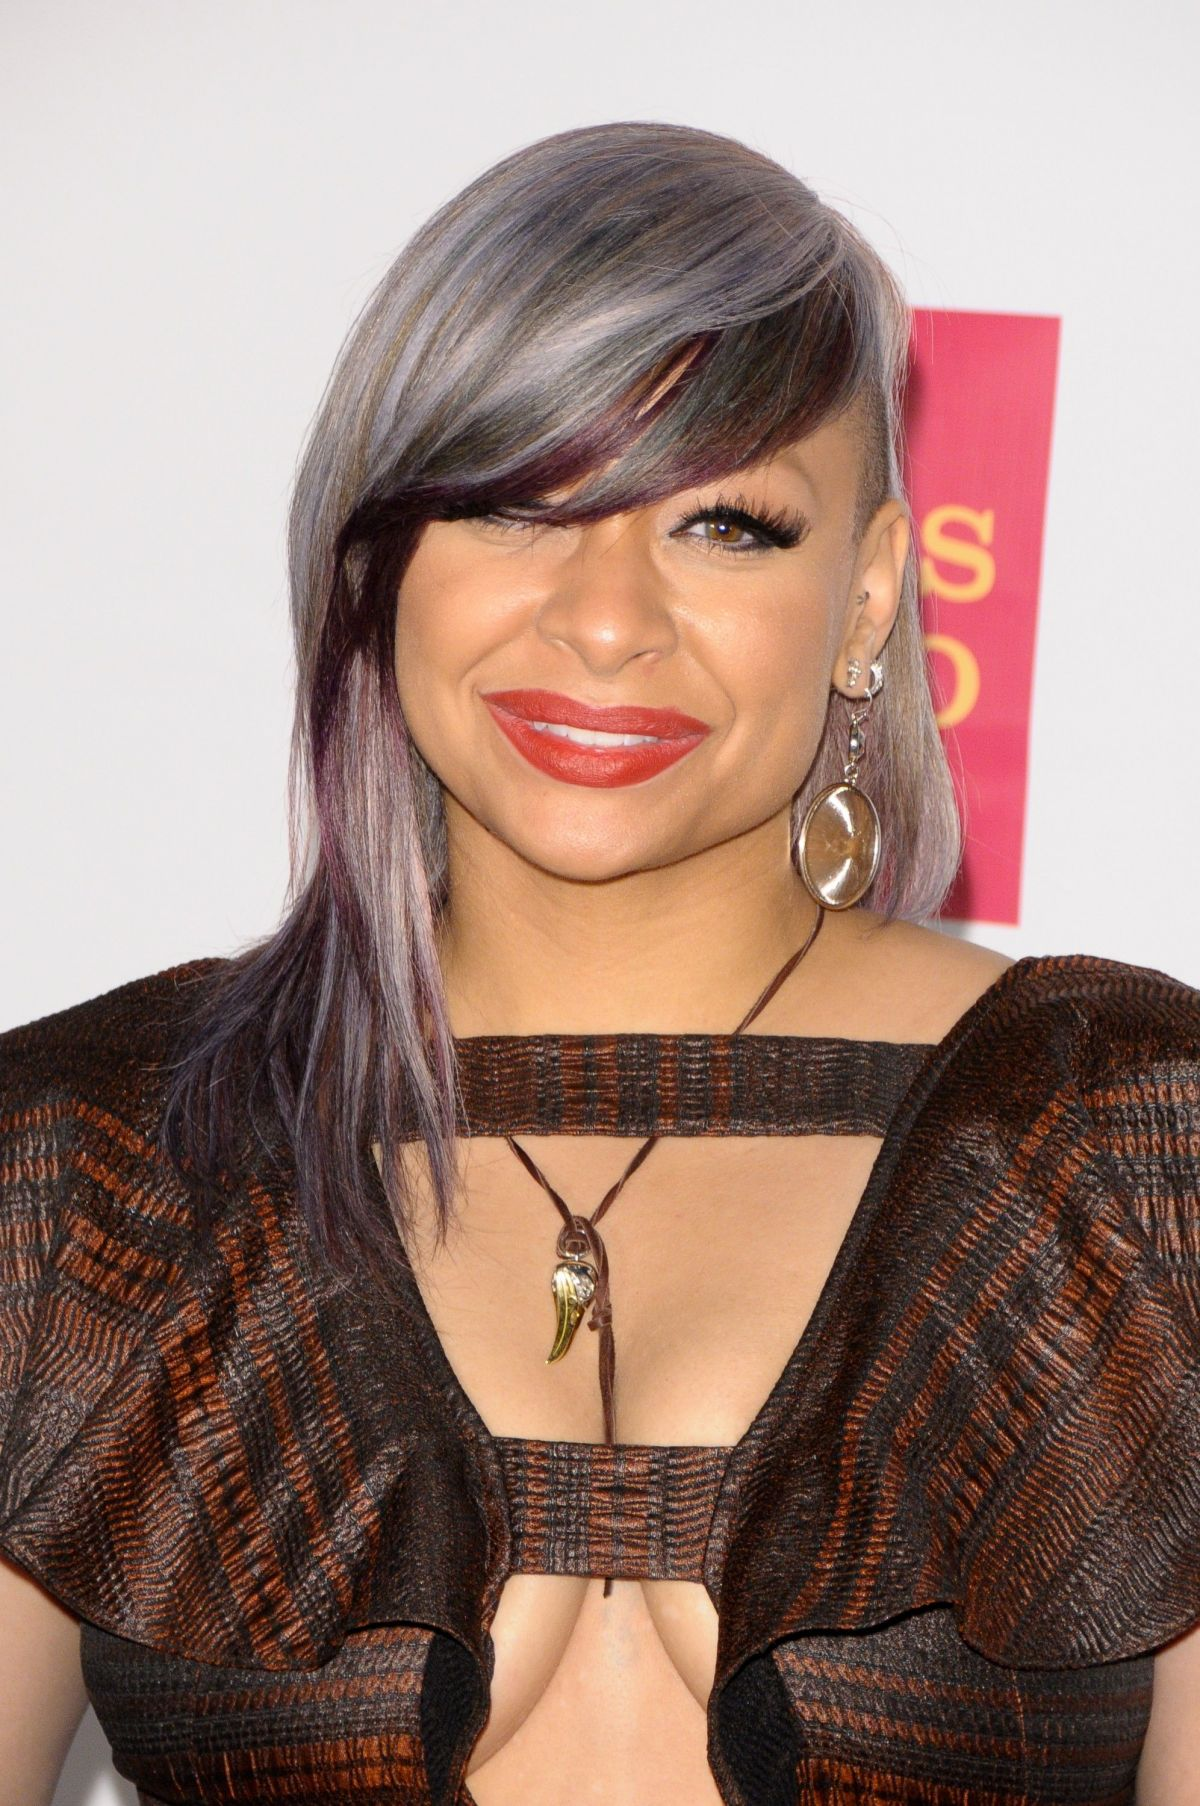 RAVEN-SYMONE at Trevorlive Event in New York